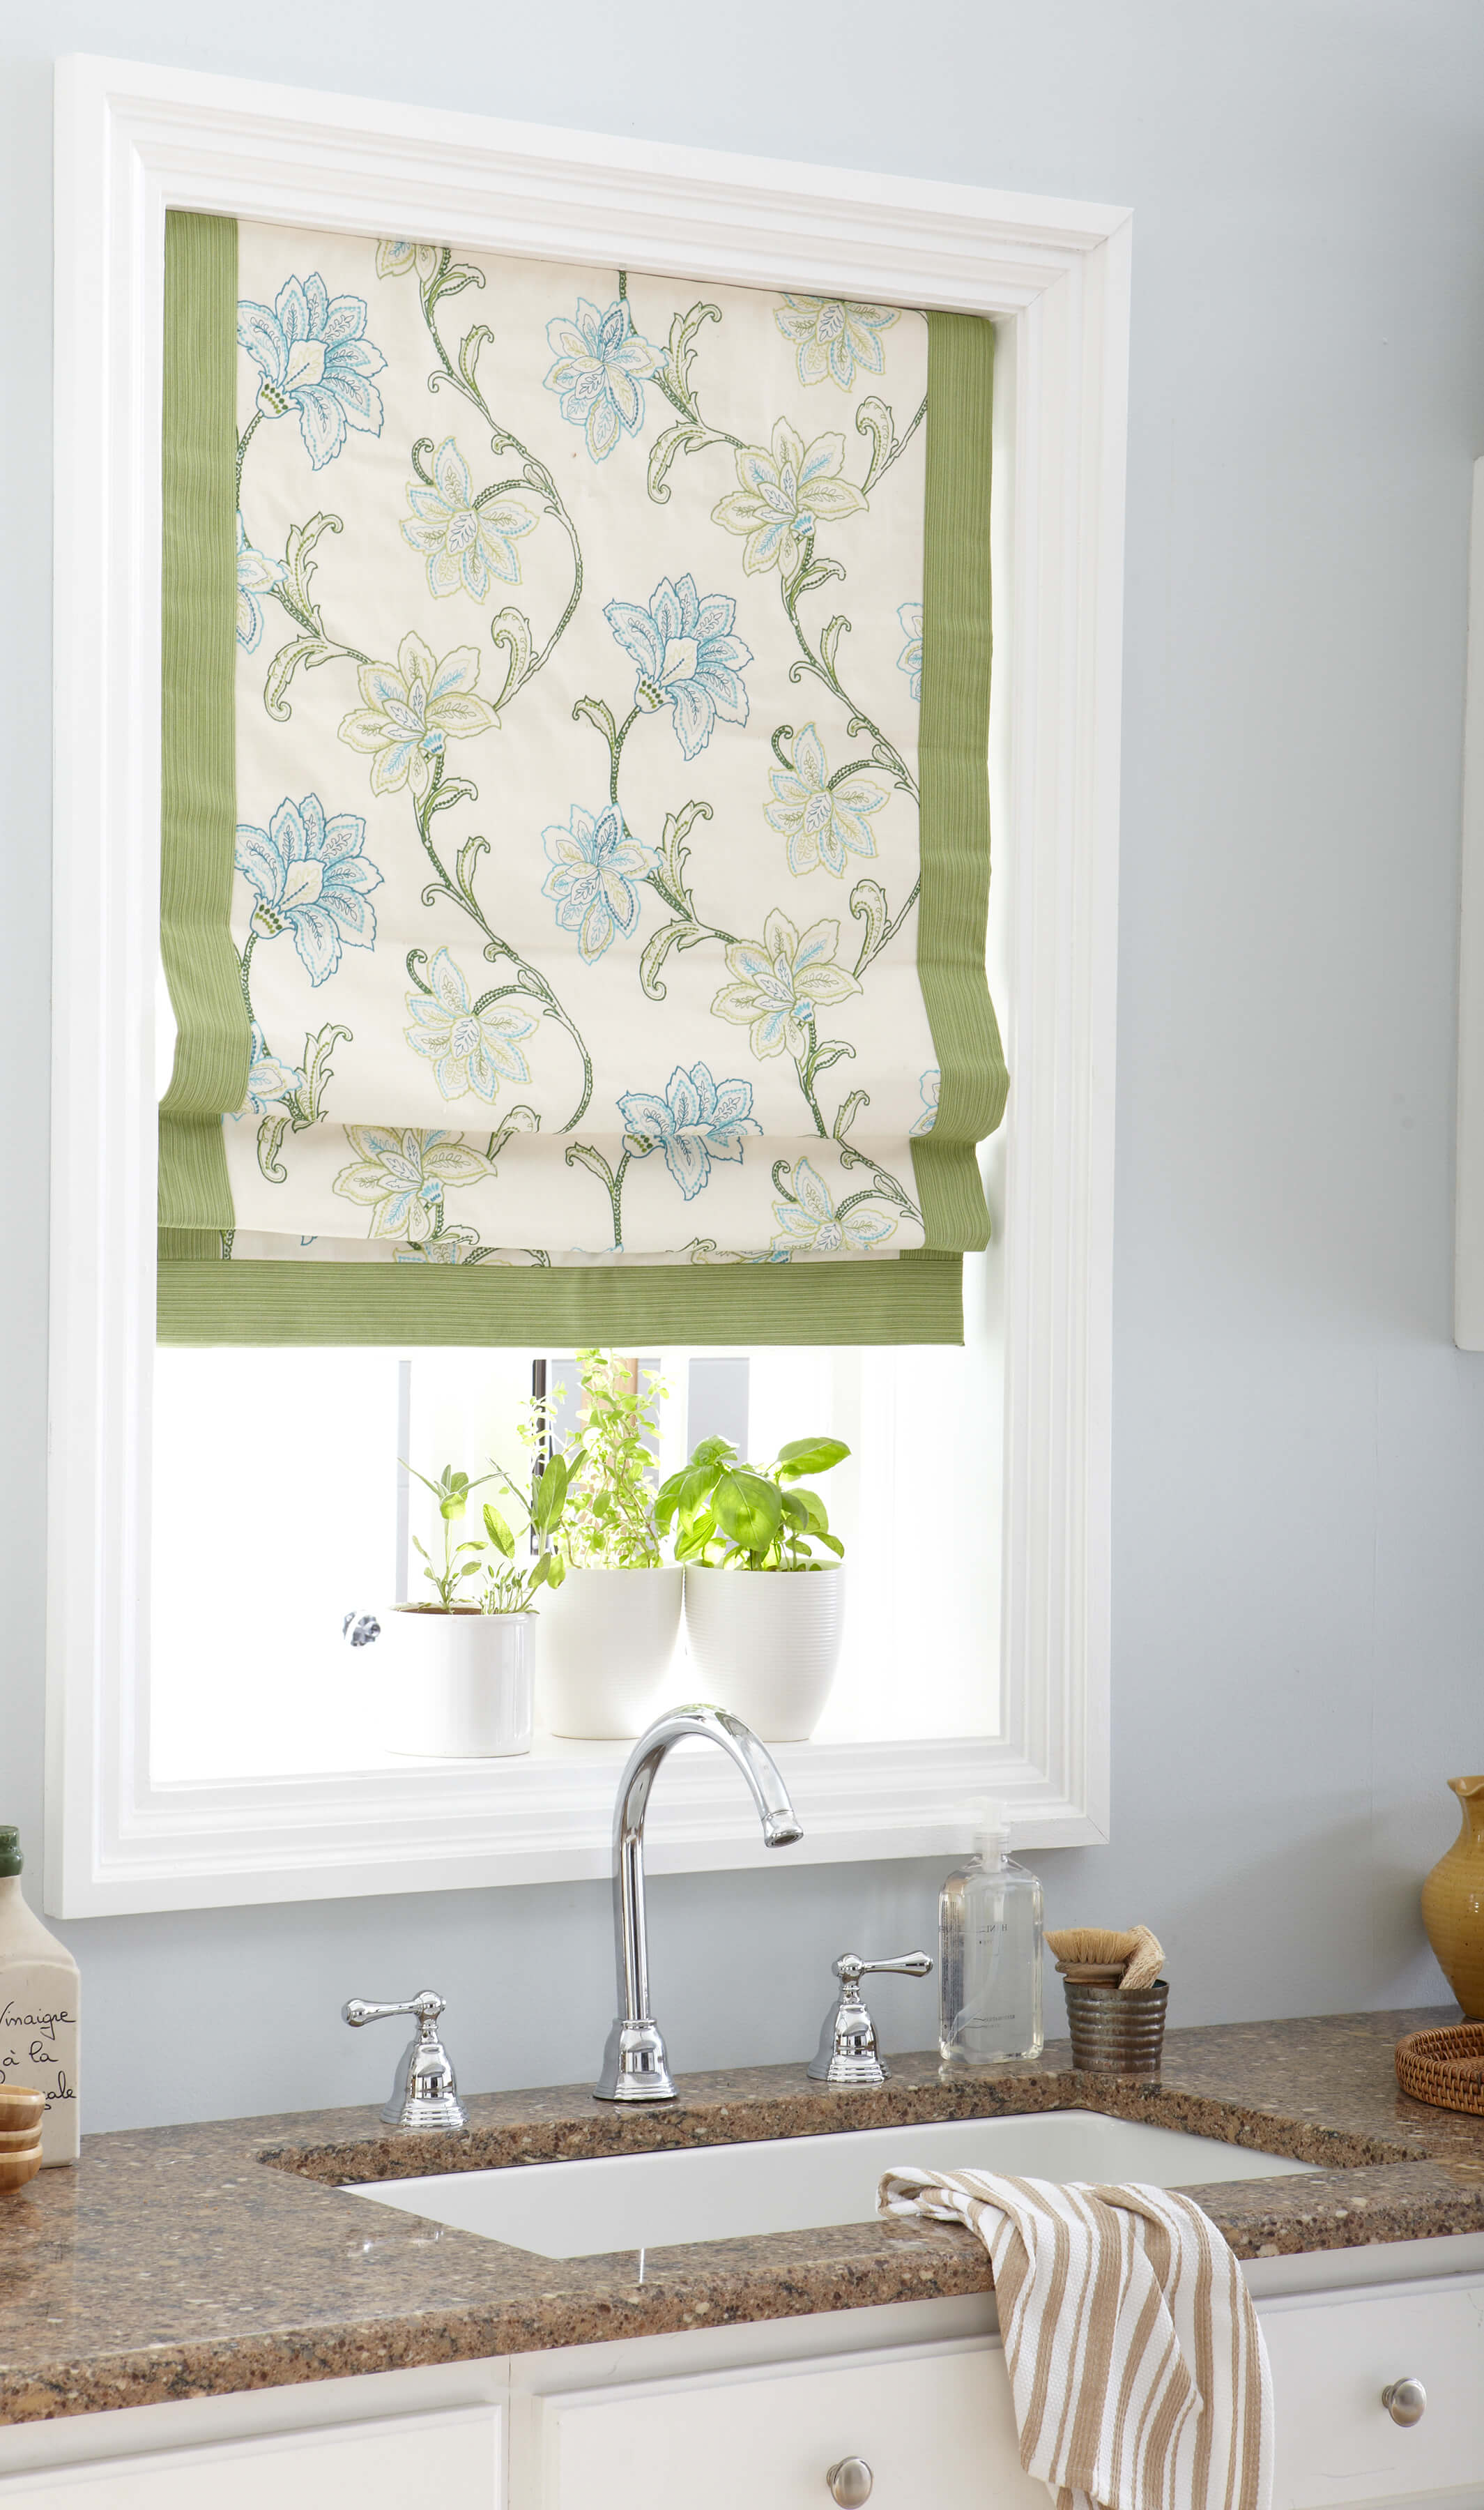 Roman shades are made from a variety of materials so it is important use cleaners that will not damage the treatment.